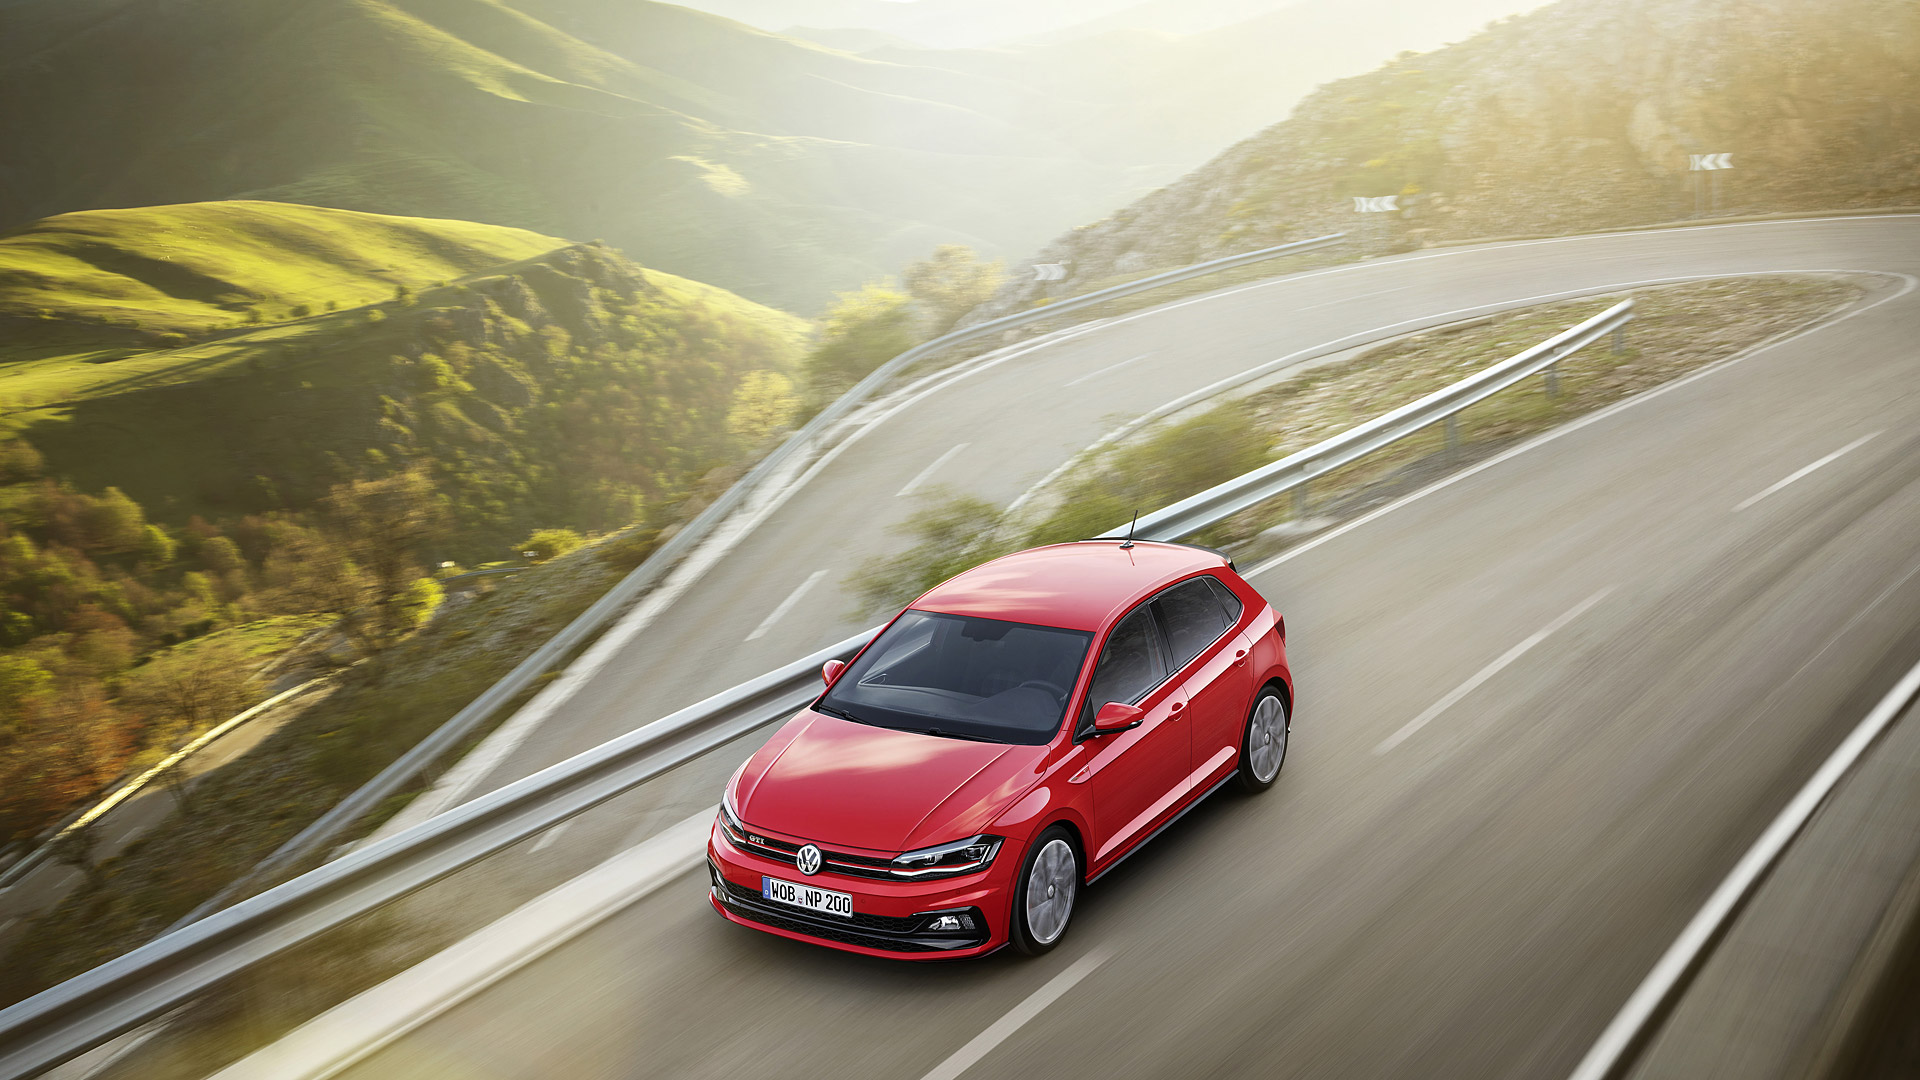 Volkswagen Polo Wallpaper 1920x1080 Download Hd Wallpaper Wallpapertip